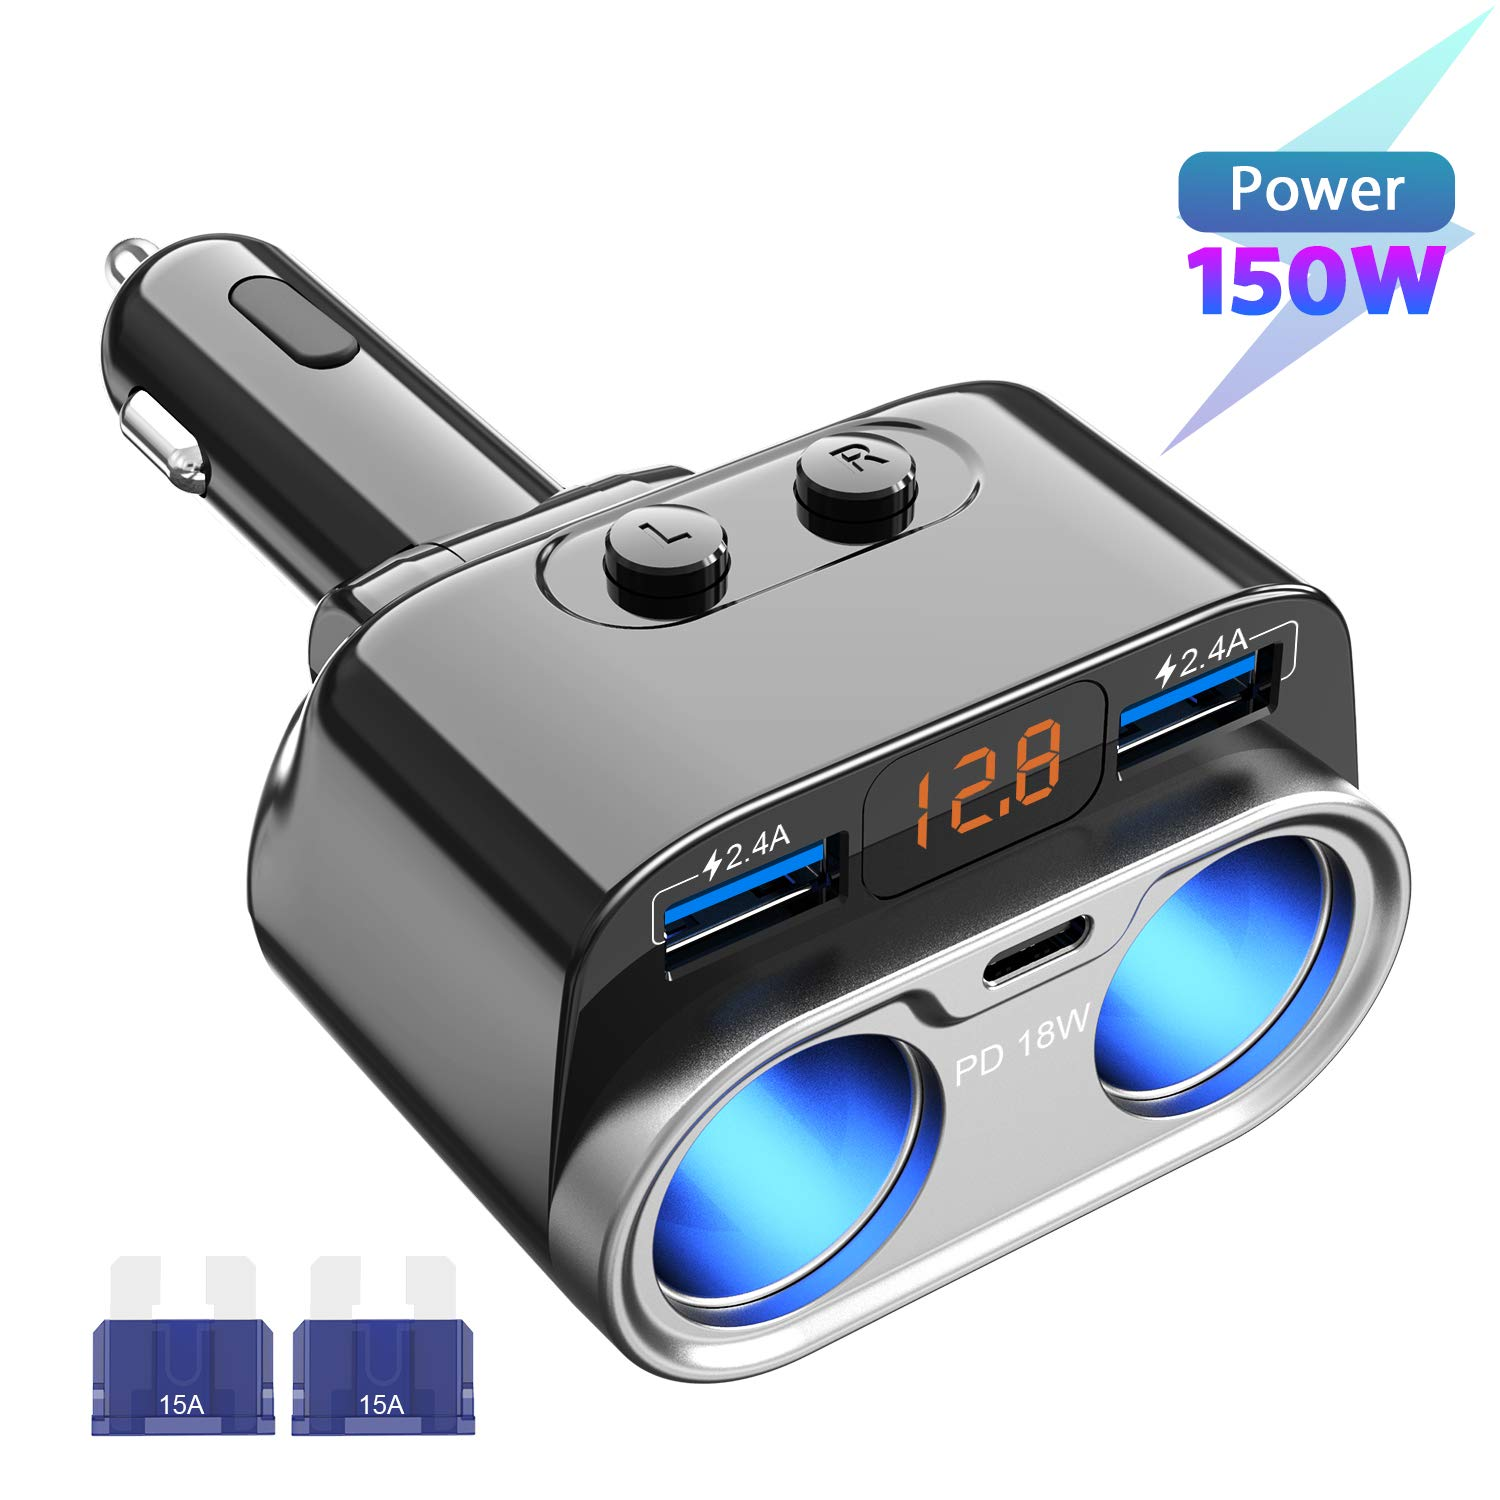 USB C Car Charger, Uniwood 2 Sockets Cigarette Lighter Splitter, 12/24V 80W Dual USB Type-C Ports Separate Switch LED Voltage for Mobile Cell Phone ...